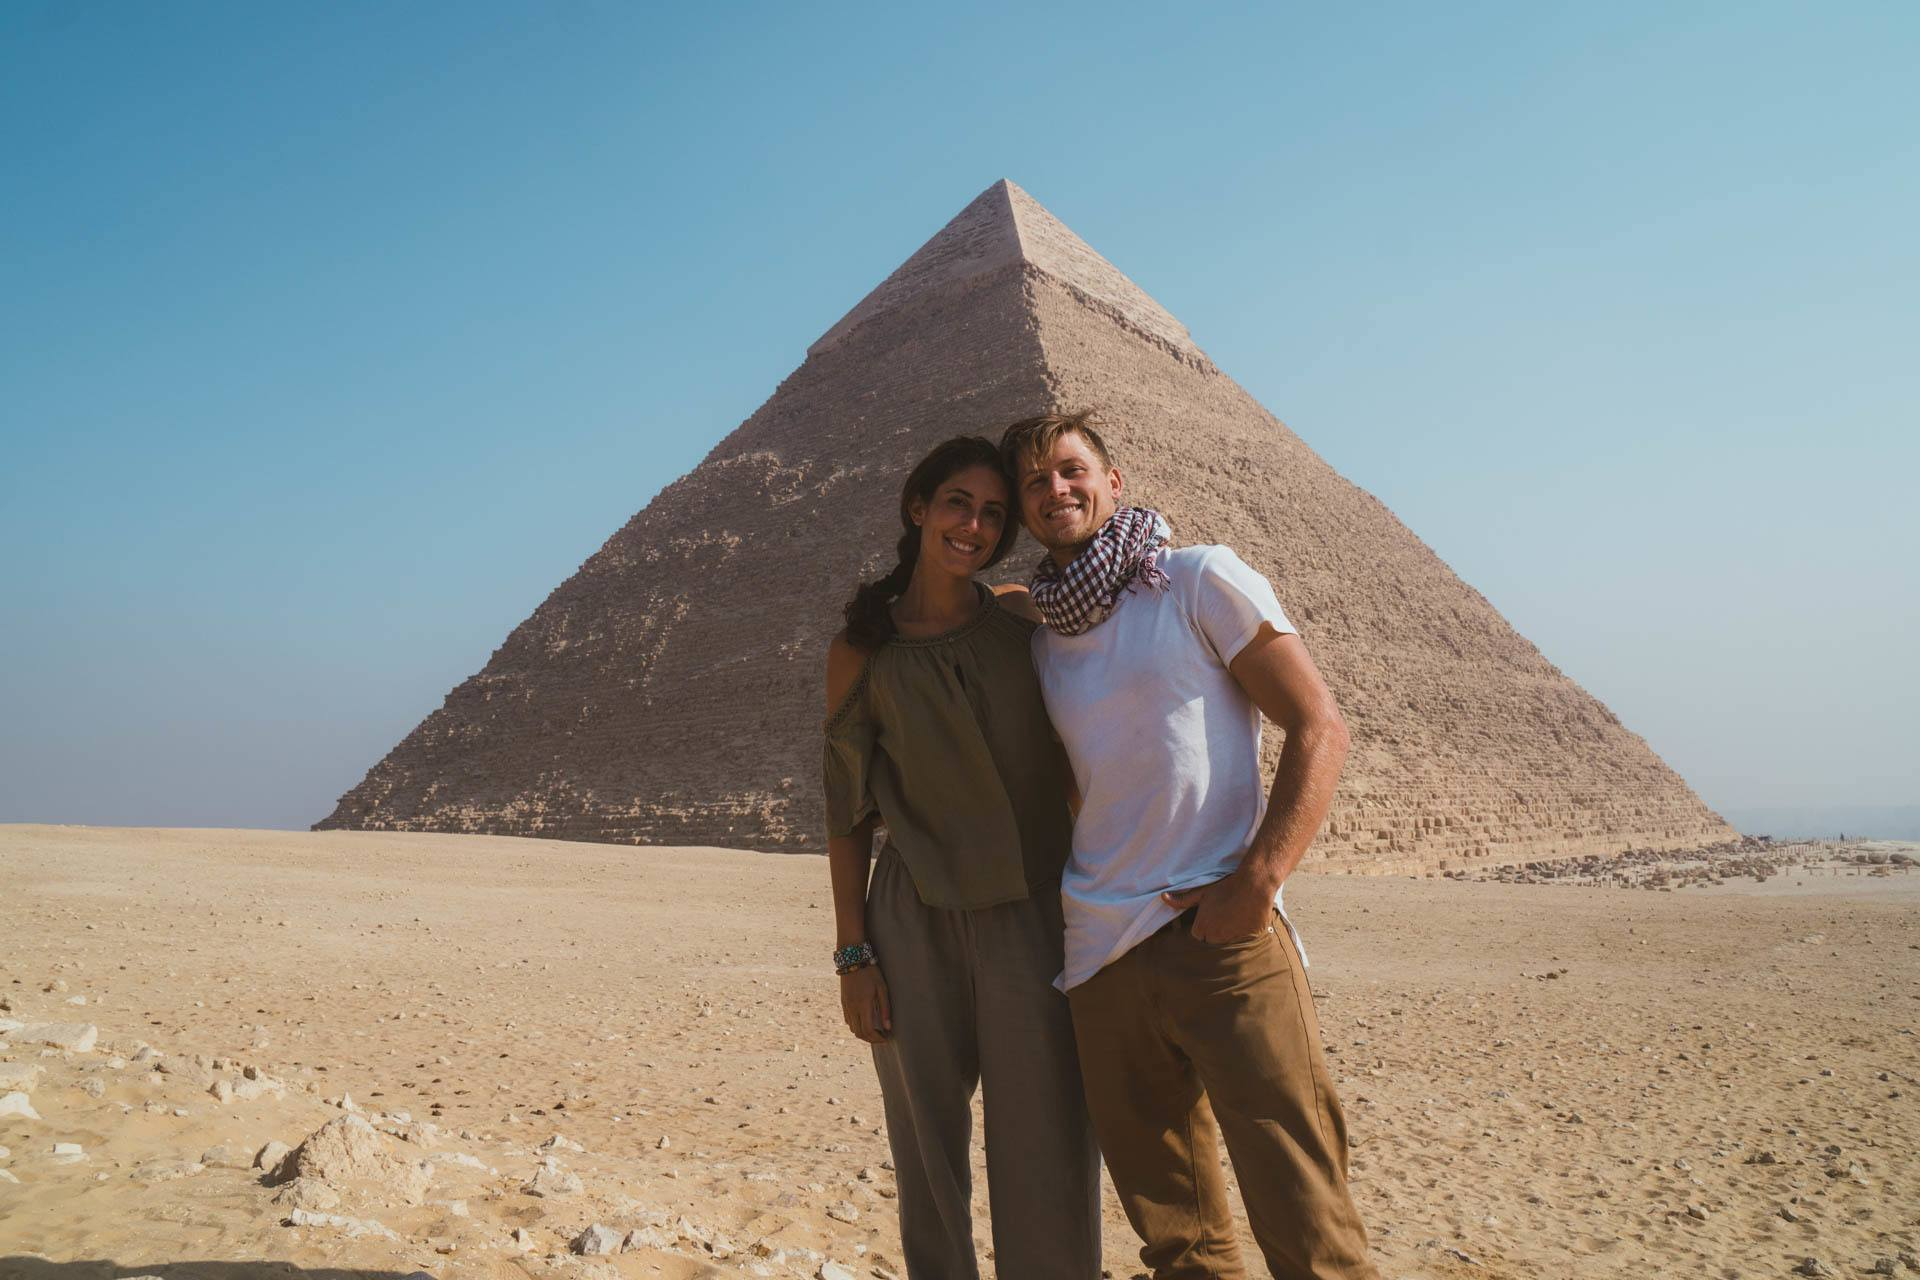 Visiting the Pyramids of Giza while backpacking Egypt